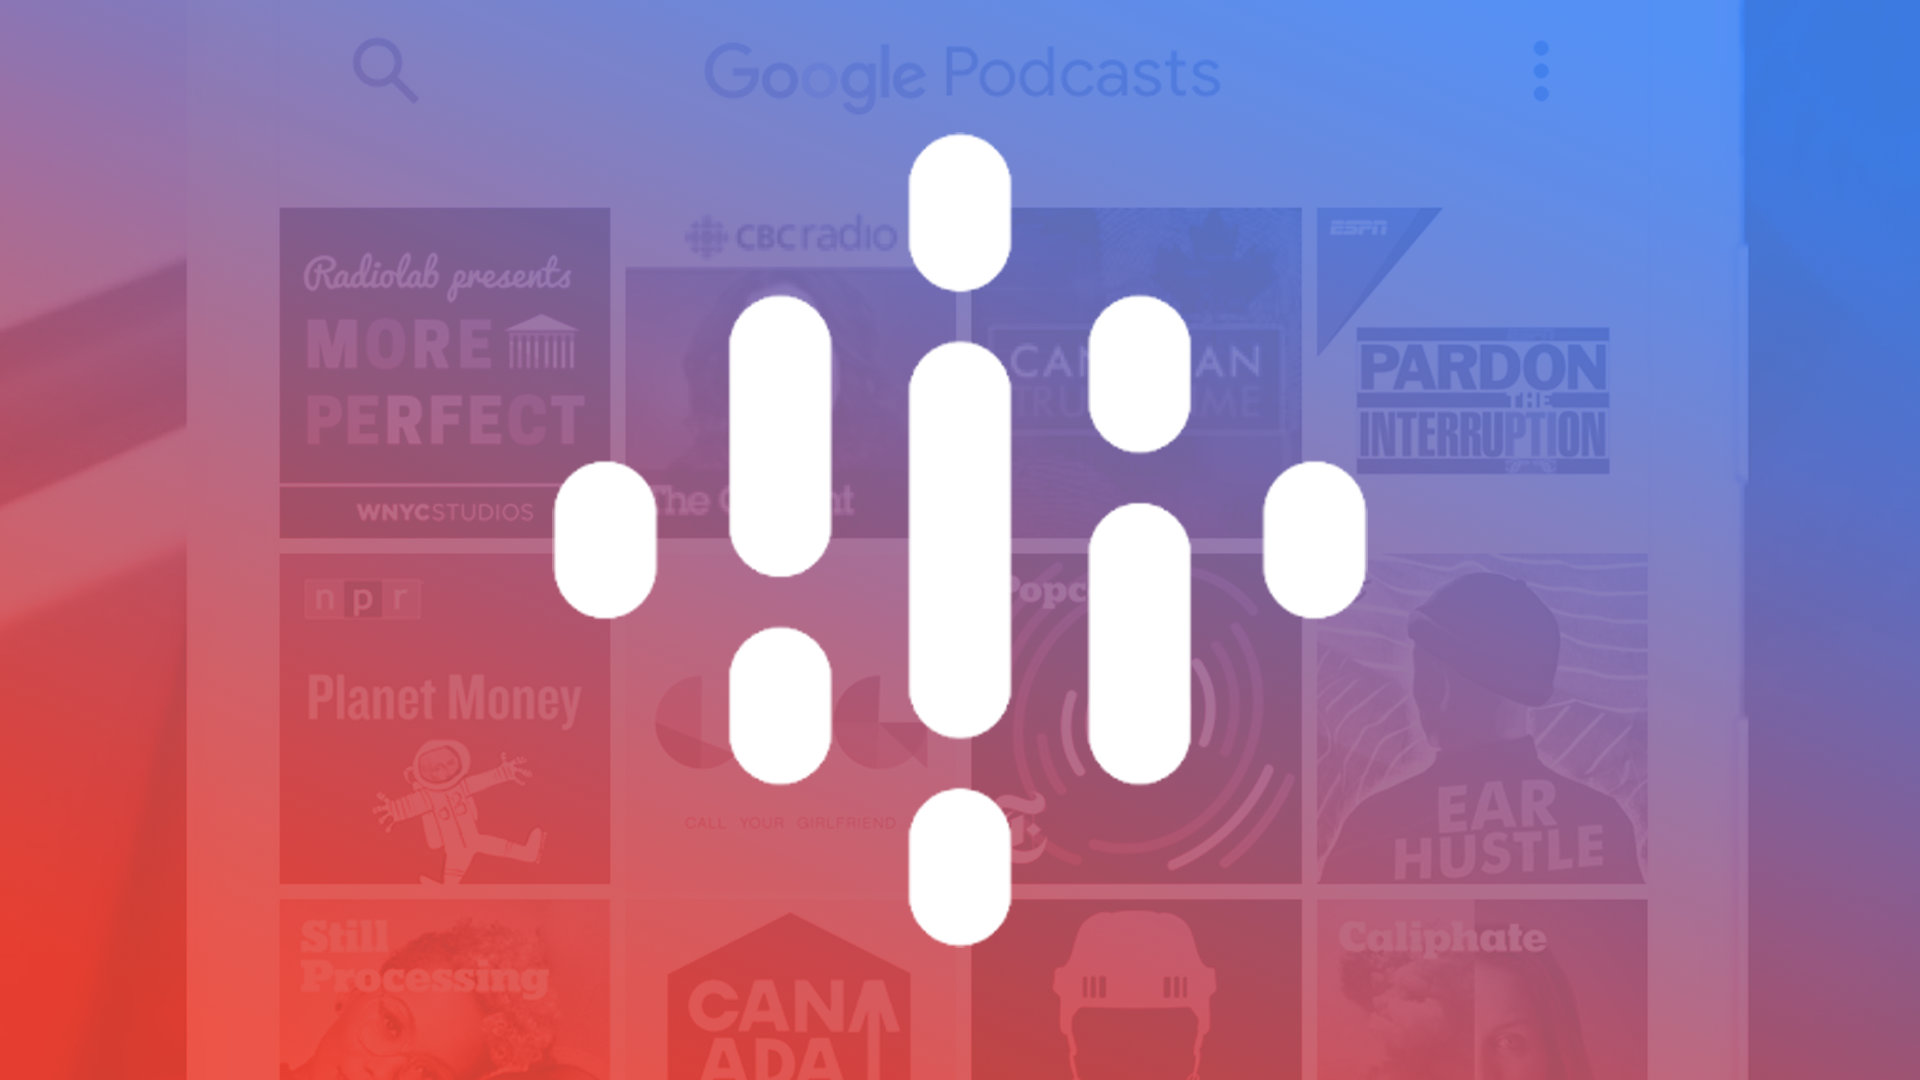 thumb-googlepodcasts.png